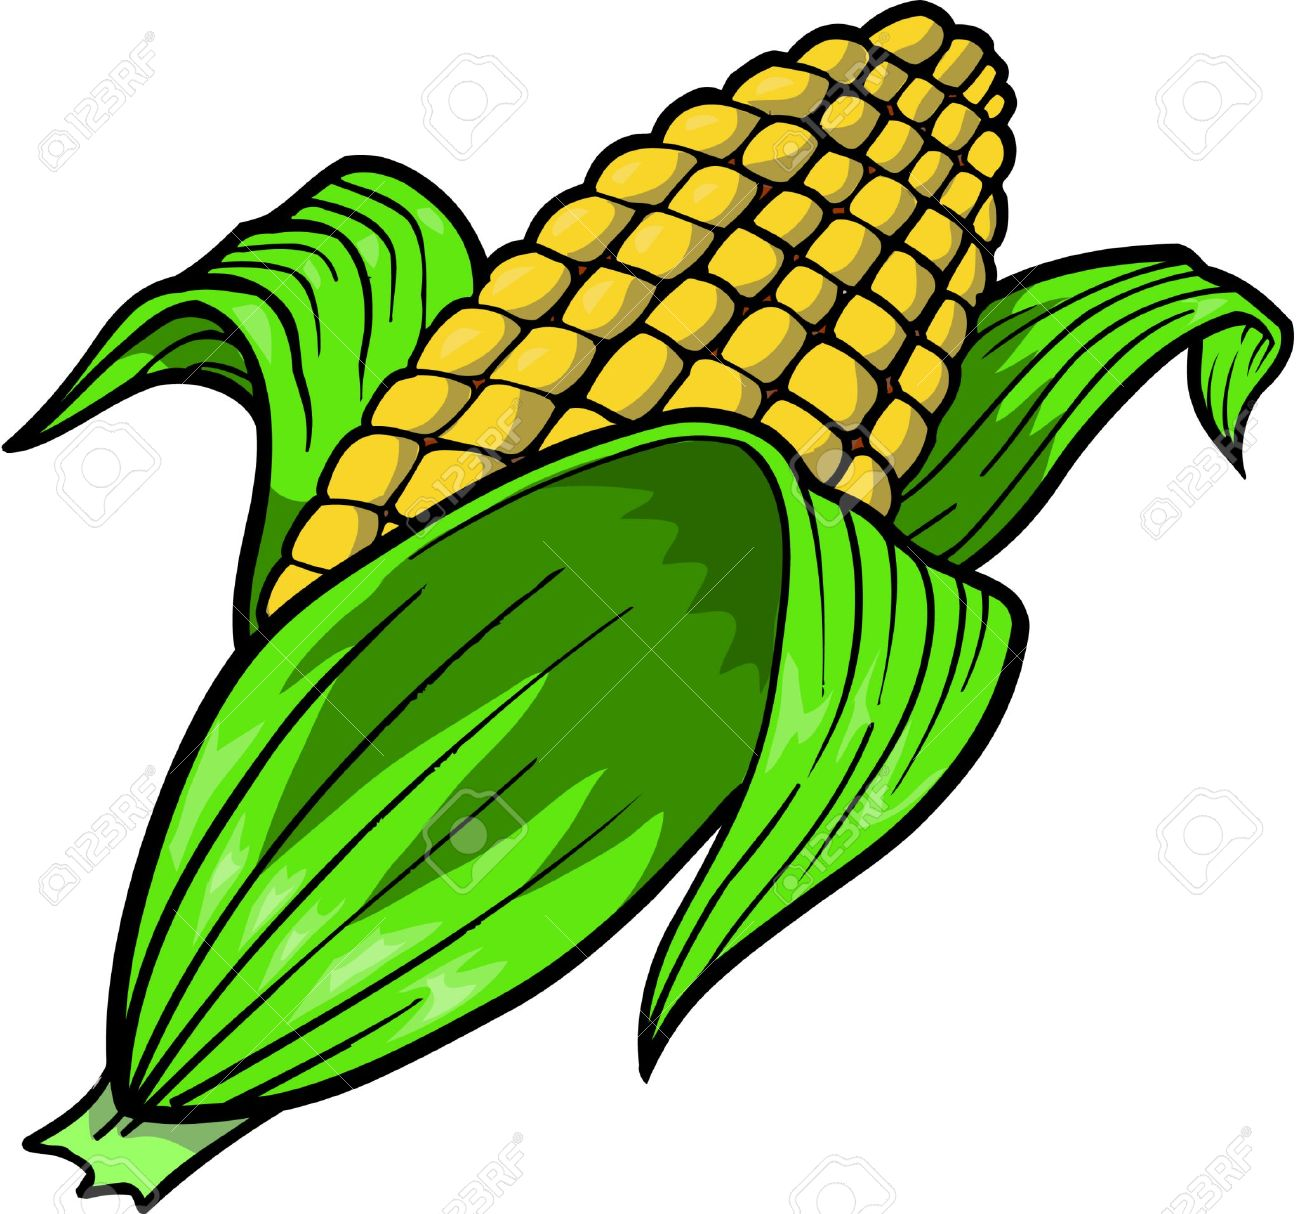 hight resolution of 1300x1214 corn clipart clipart cliparts for you